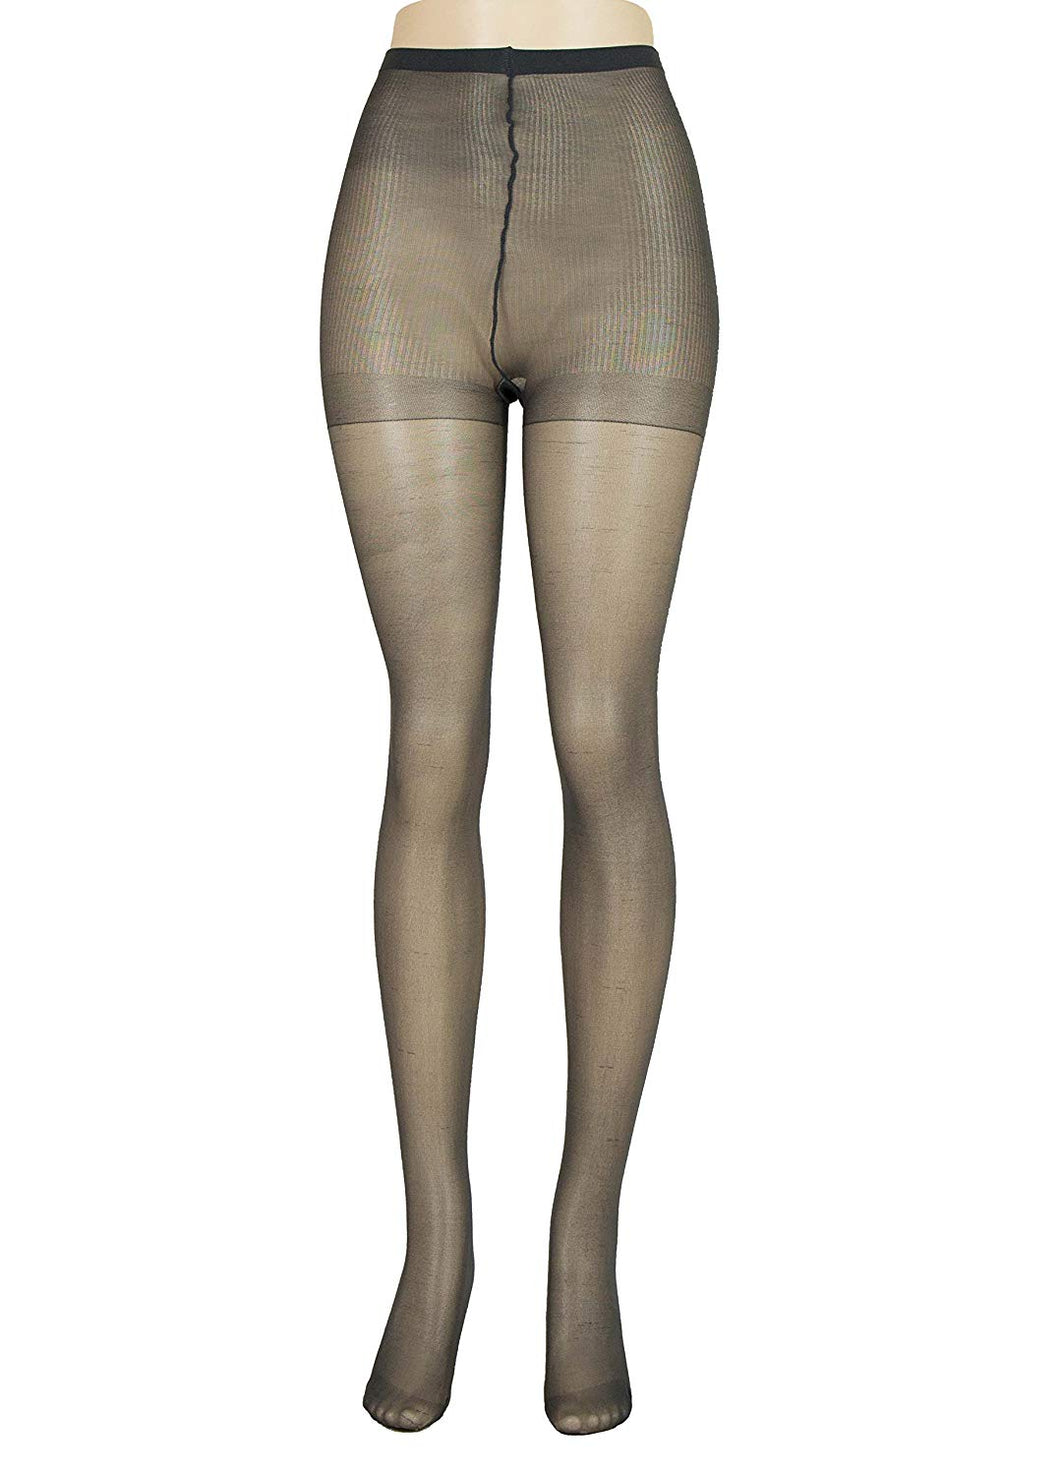 Lissele Women's Plus Size Day Sheer Pantyhose (Pack of 3)